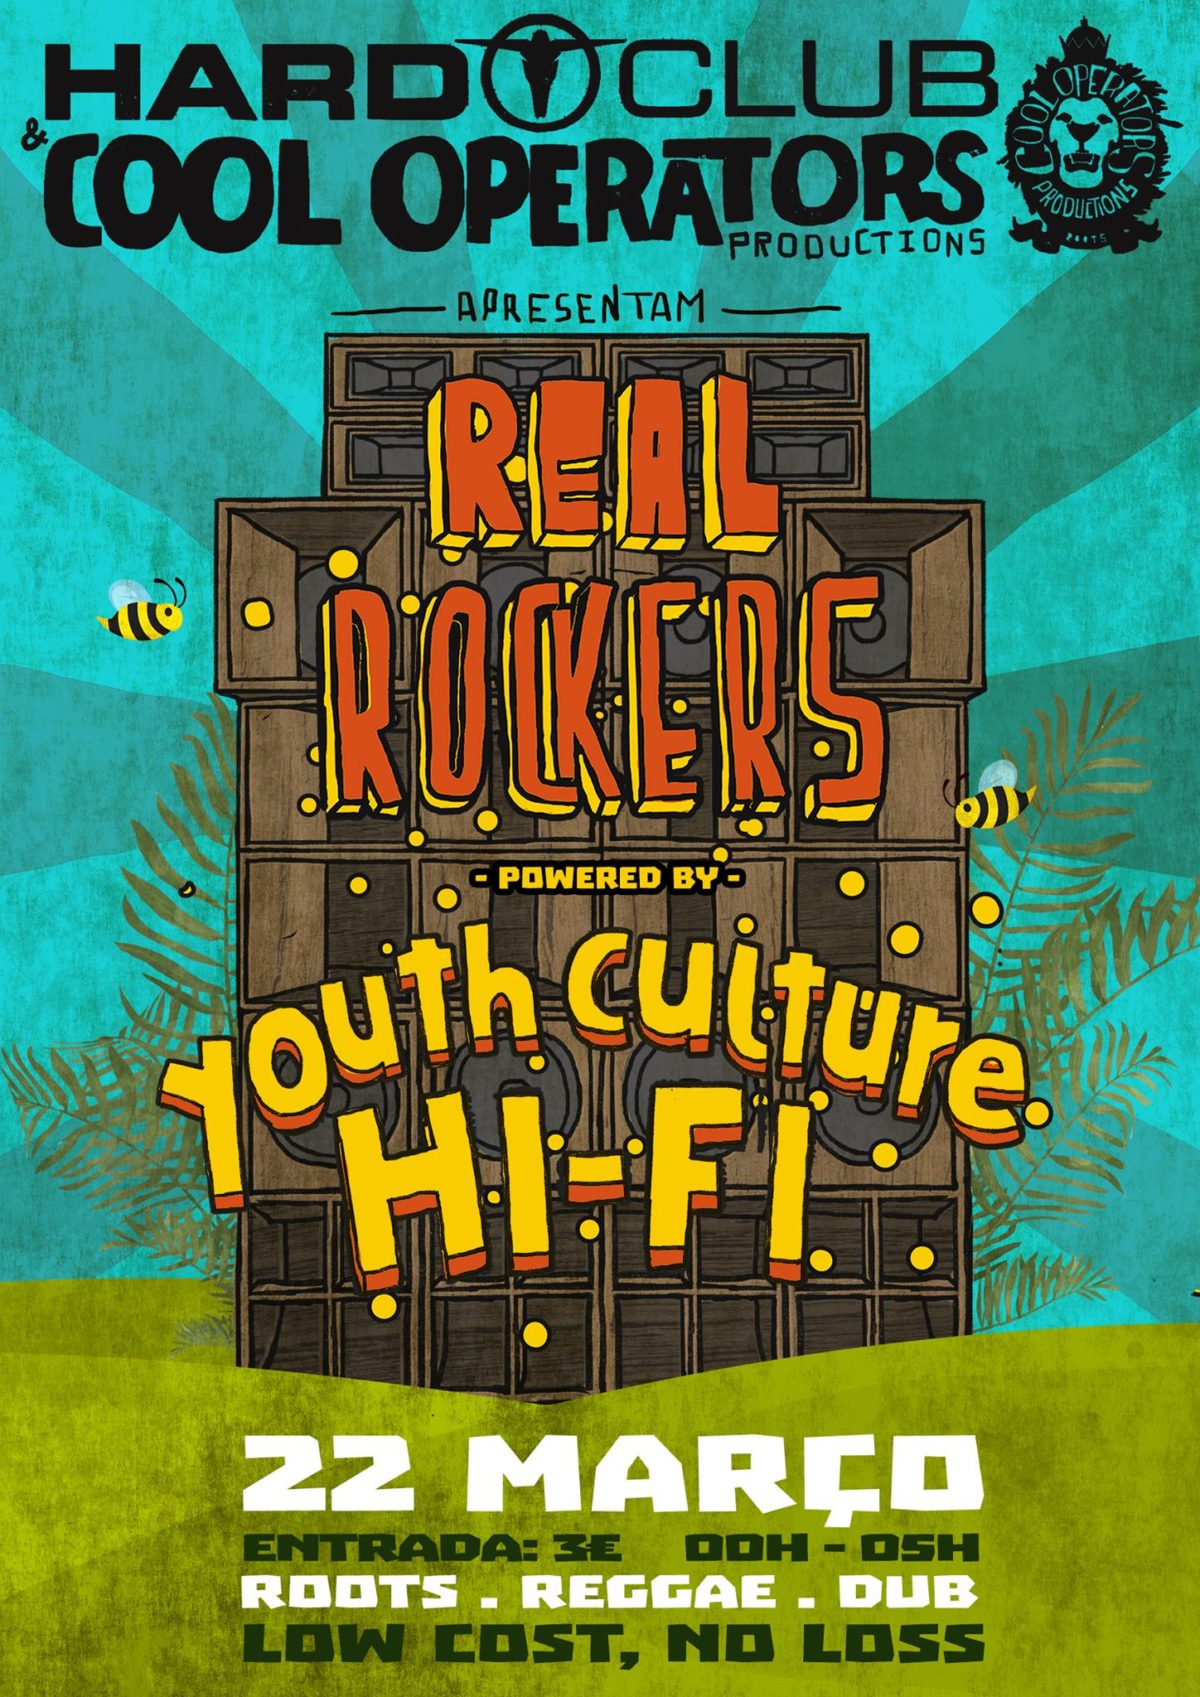 Porta Hi Fi Design.Real Rockers Powered By Youth Culture Hi Fi Hard Club